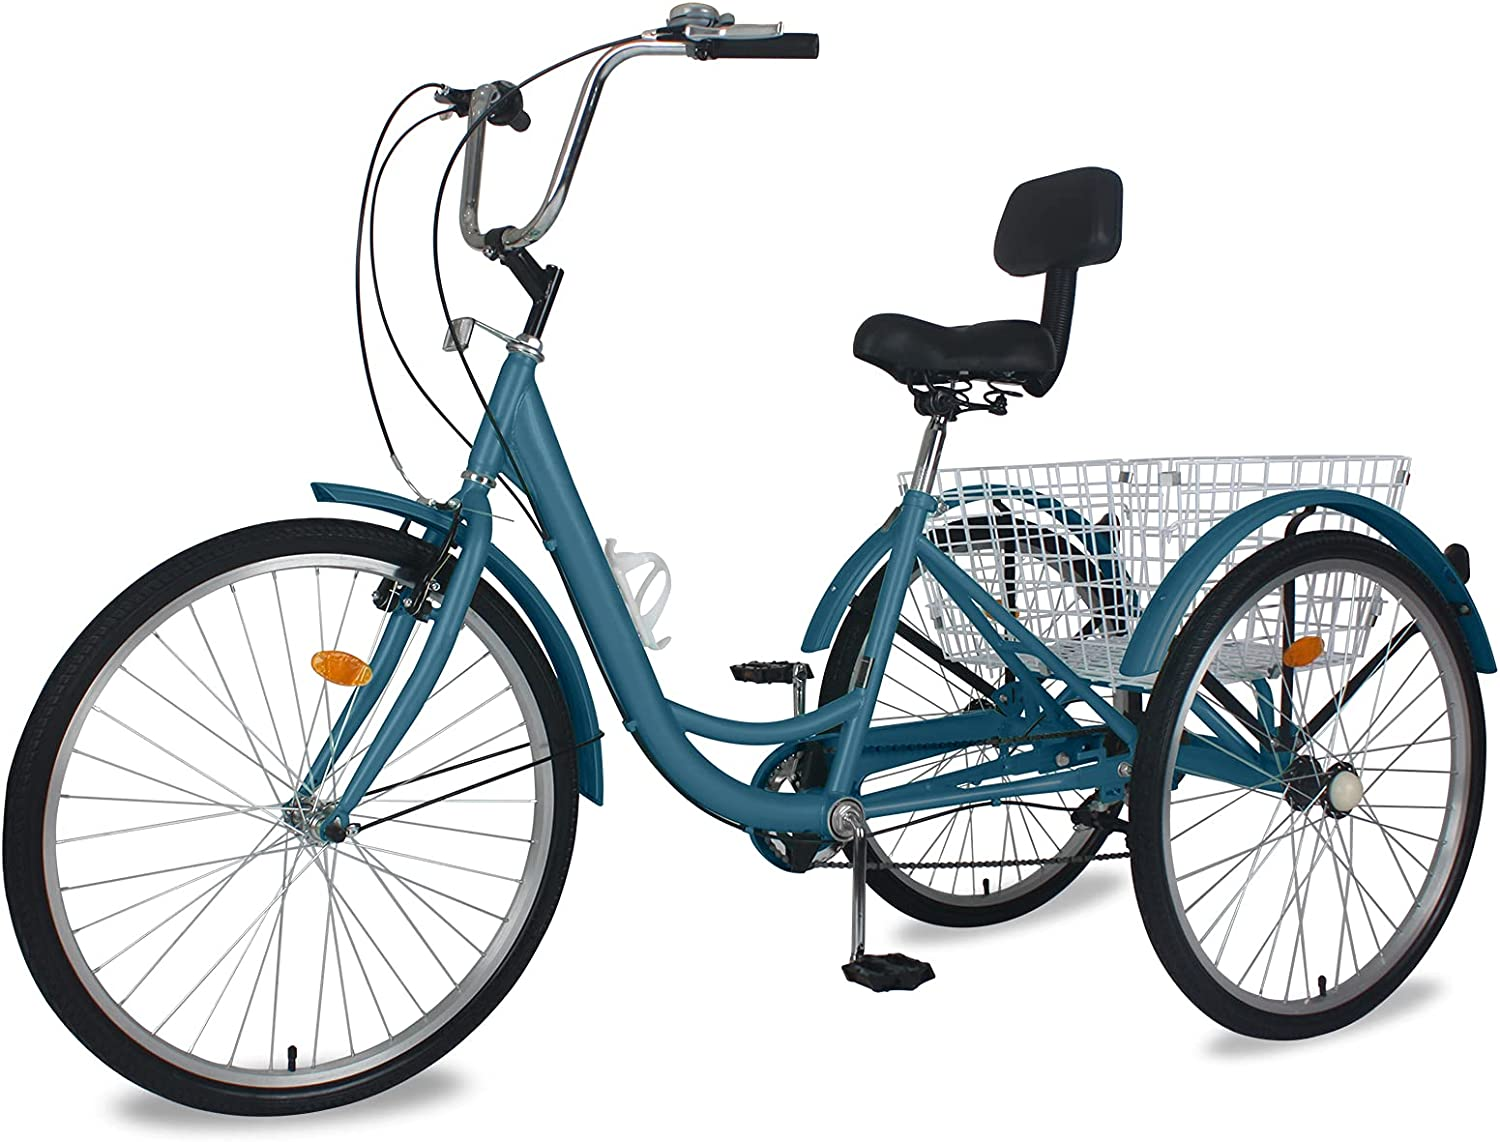 Adult Tricycles 3 Wheel Bike Dealing full price reduction New York Mall 7 Speed Trikes 24 26 inch